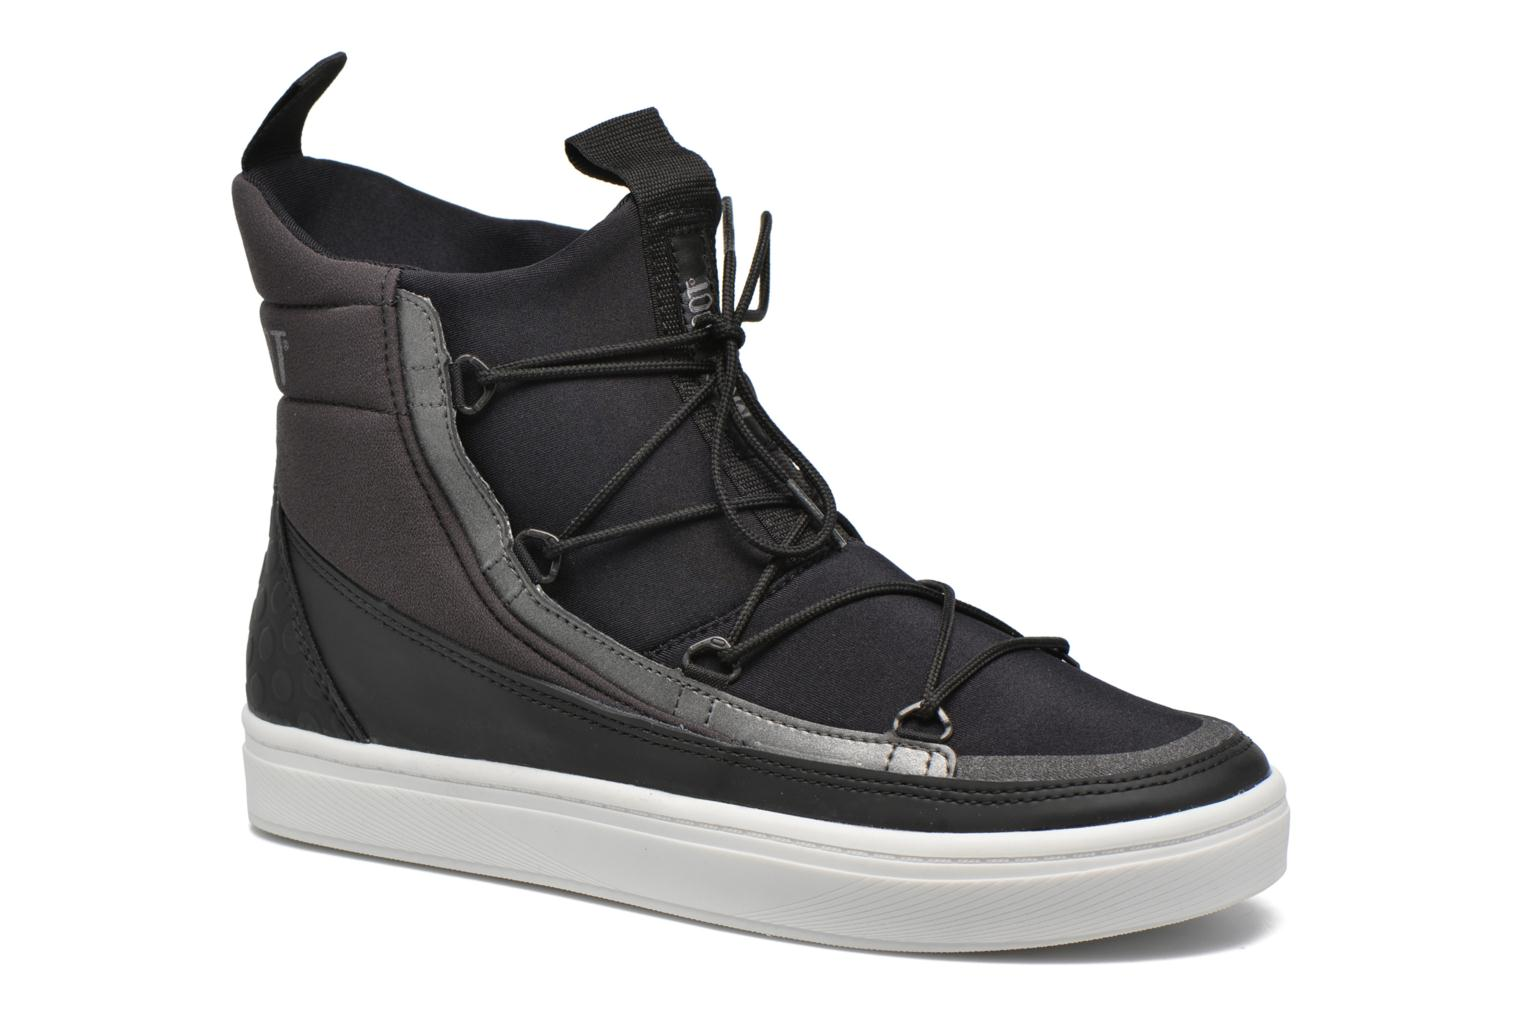 Marques Chaussure femme Moon Boot femme Vega Hi TF Black-Anthracite